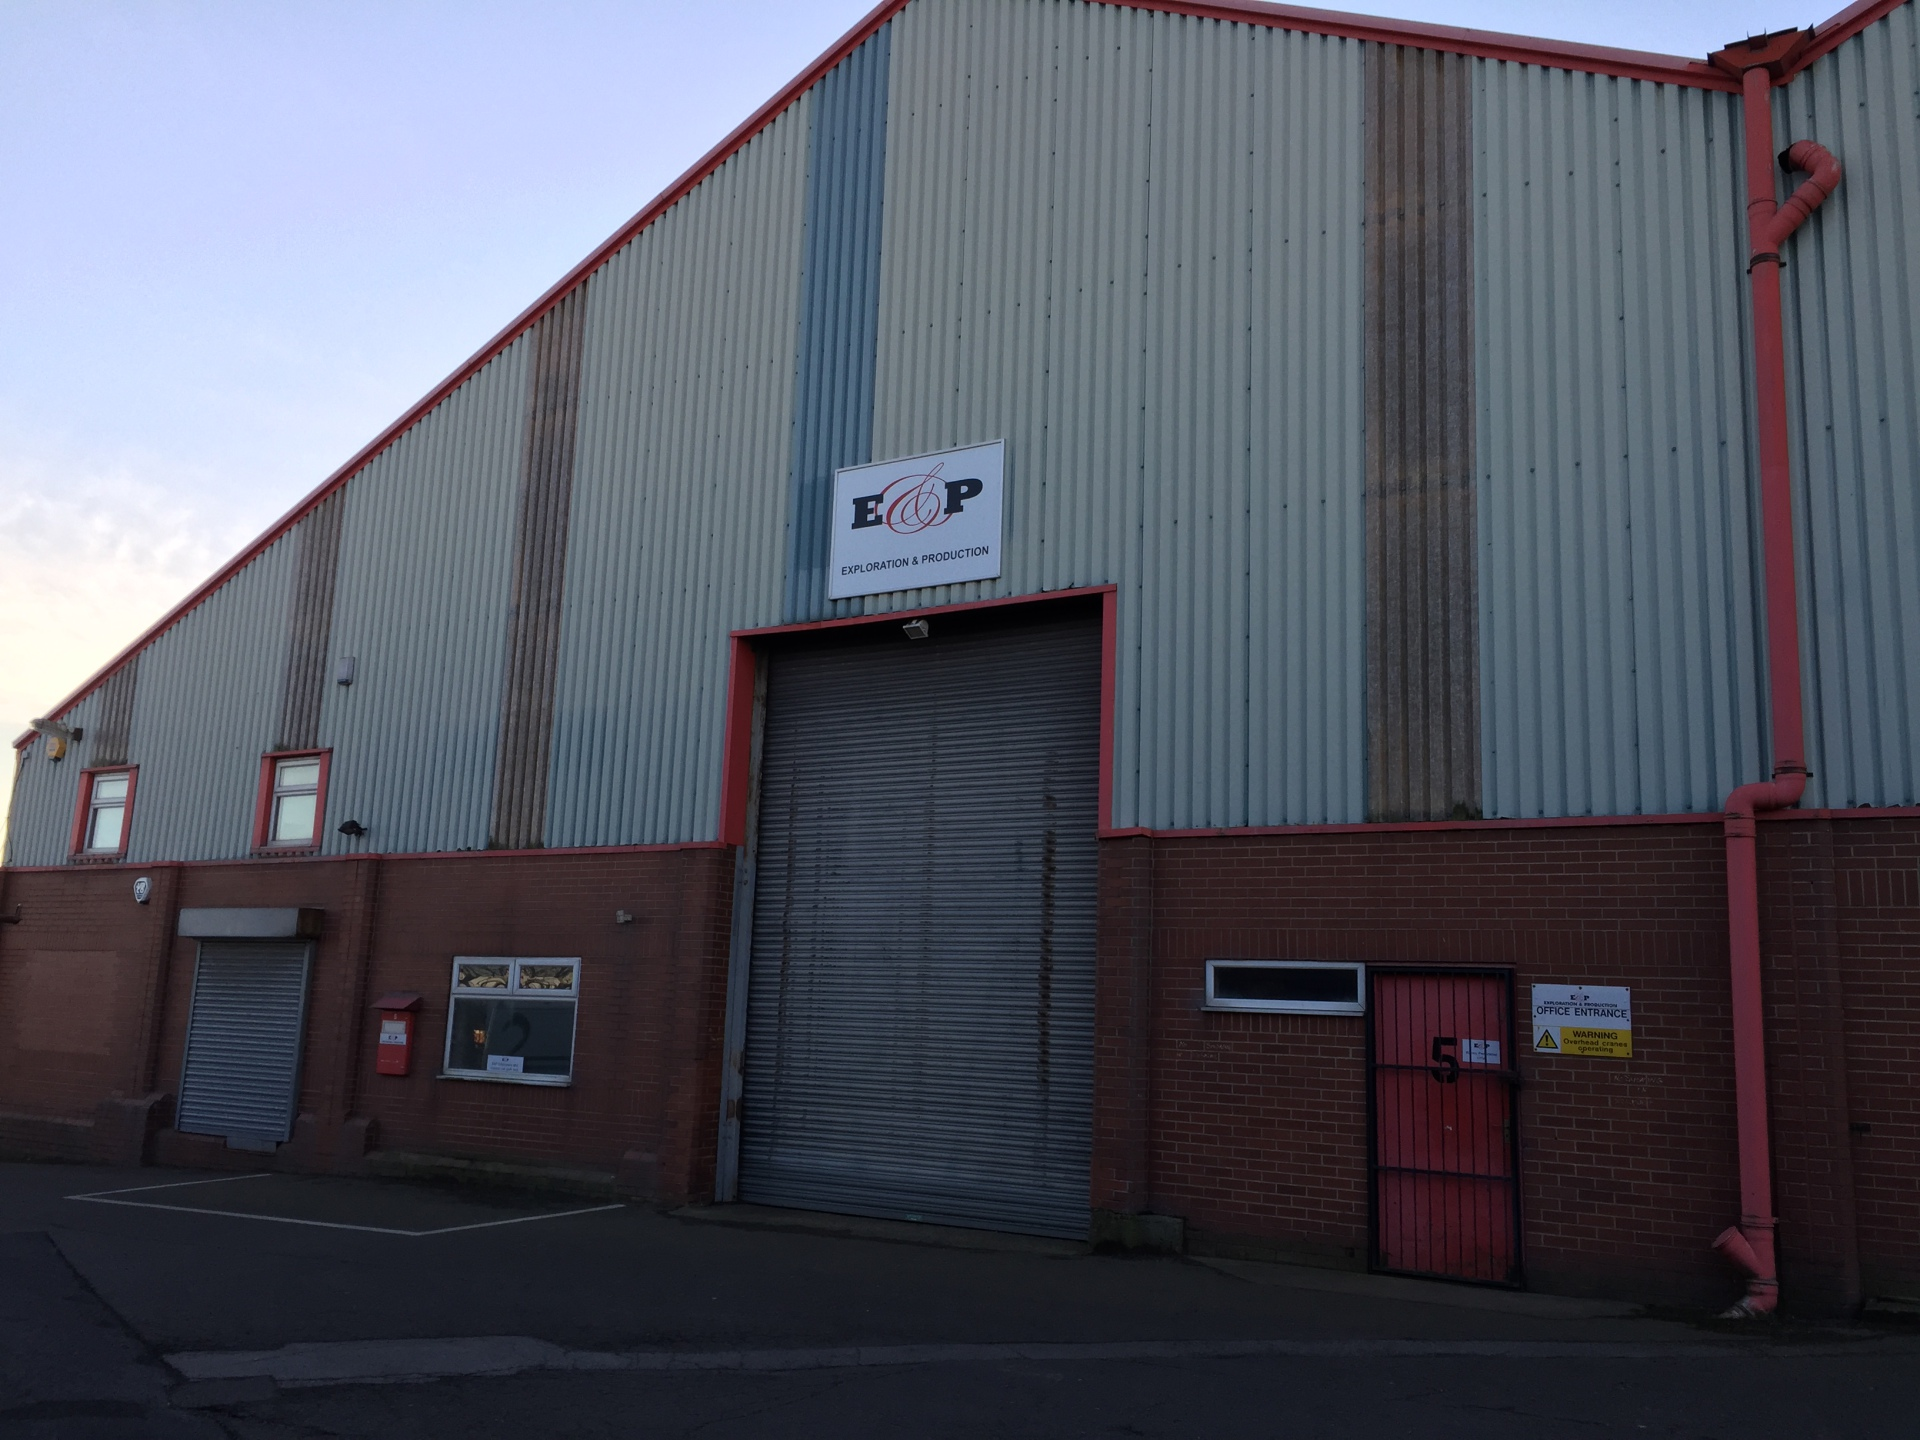 Unit 5 Rockingham Industrial Estate, Birdwell, Barnsley, S70 5TW